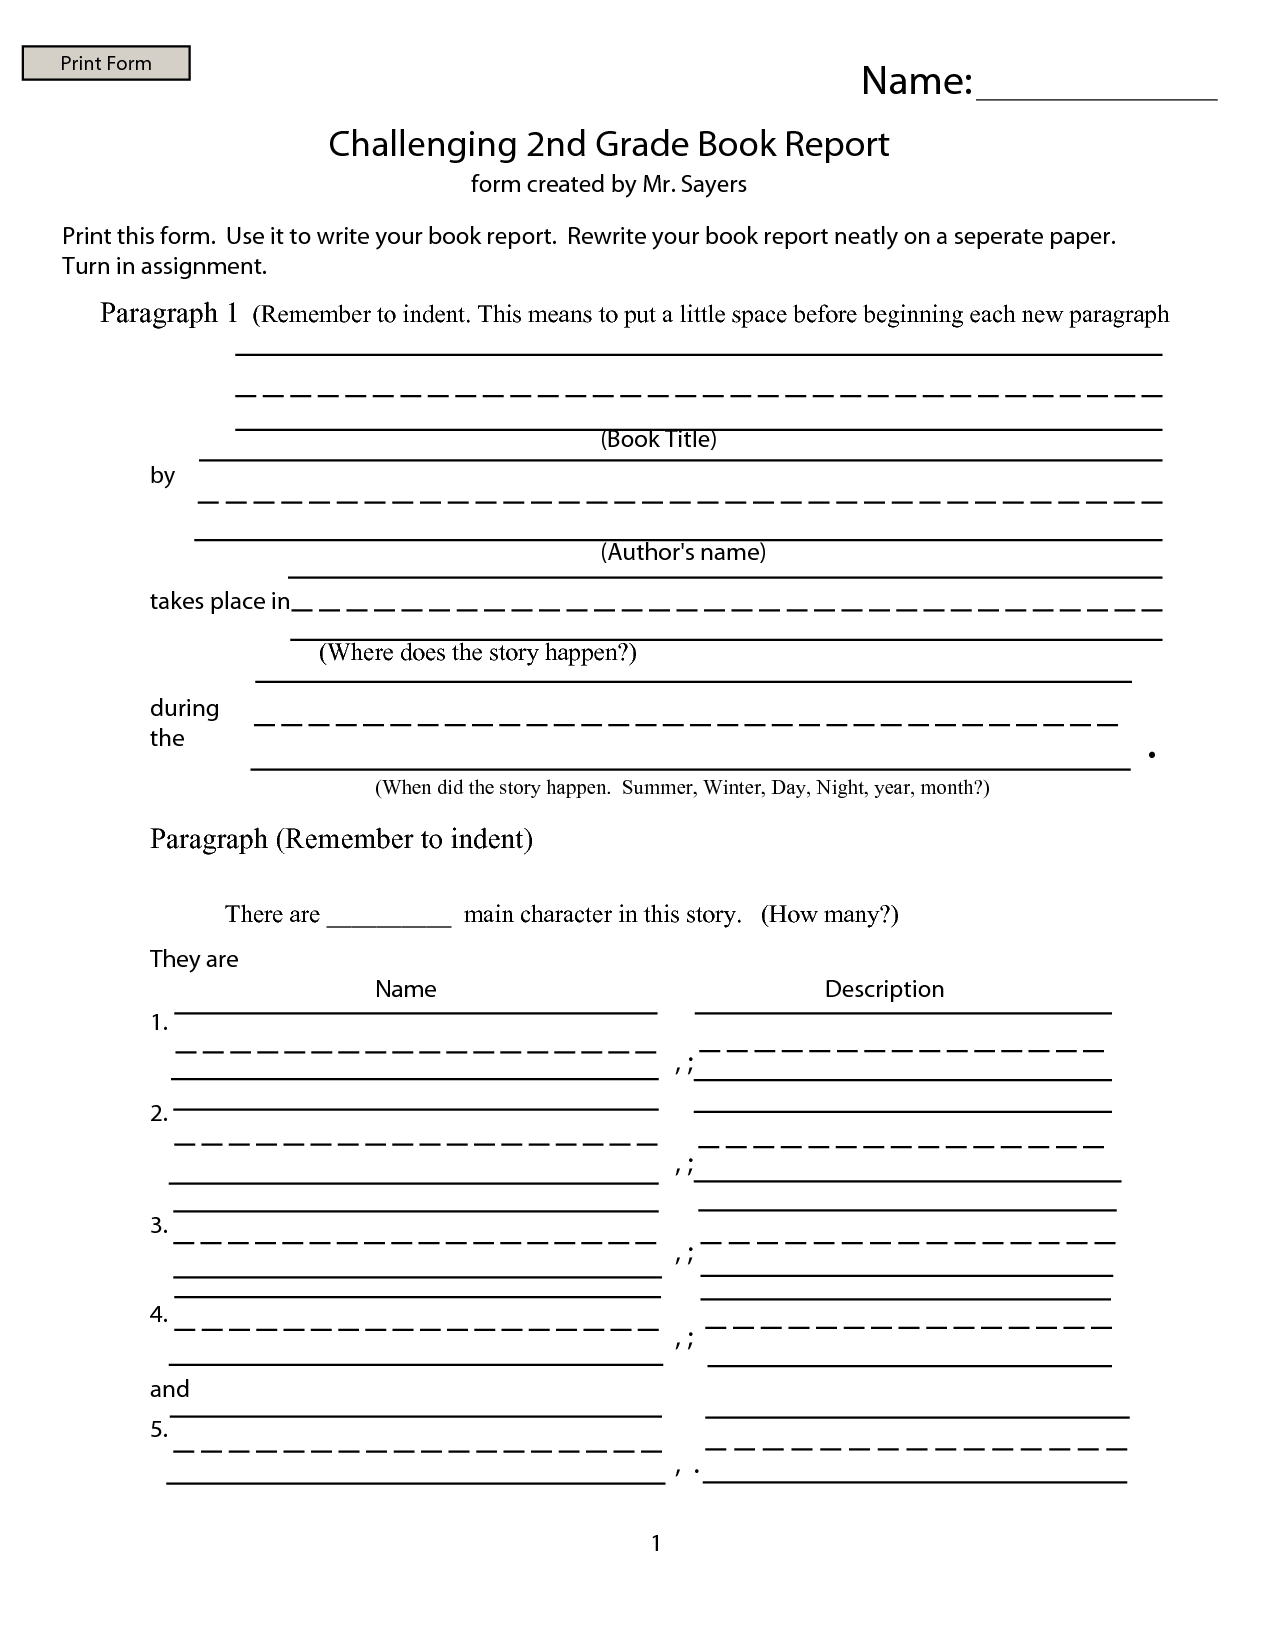 book report worksheets 2nd grade These forms also help introduce students to the idea of a book report format and show them what kind of information may be expected on longer, multi-page reports that they are expected to complete in the higher grades a form is also easier to grade, especially for teachers who have a large classroom and.